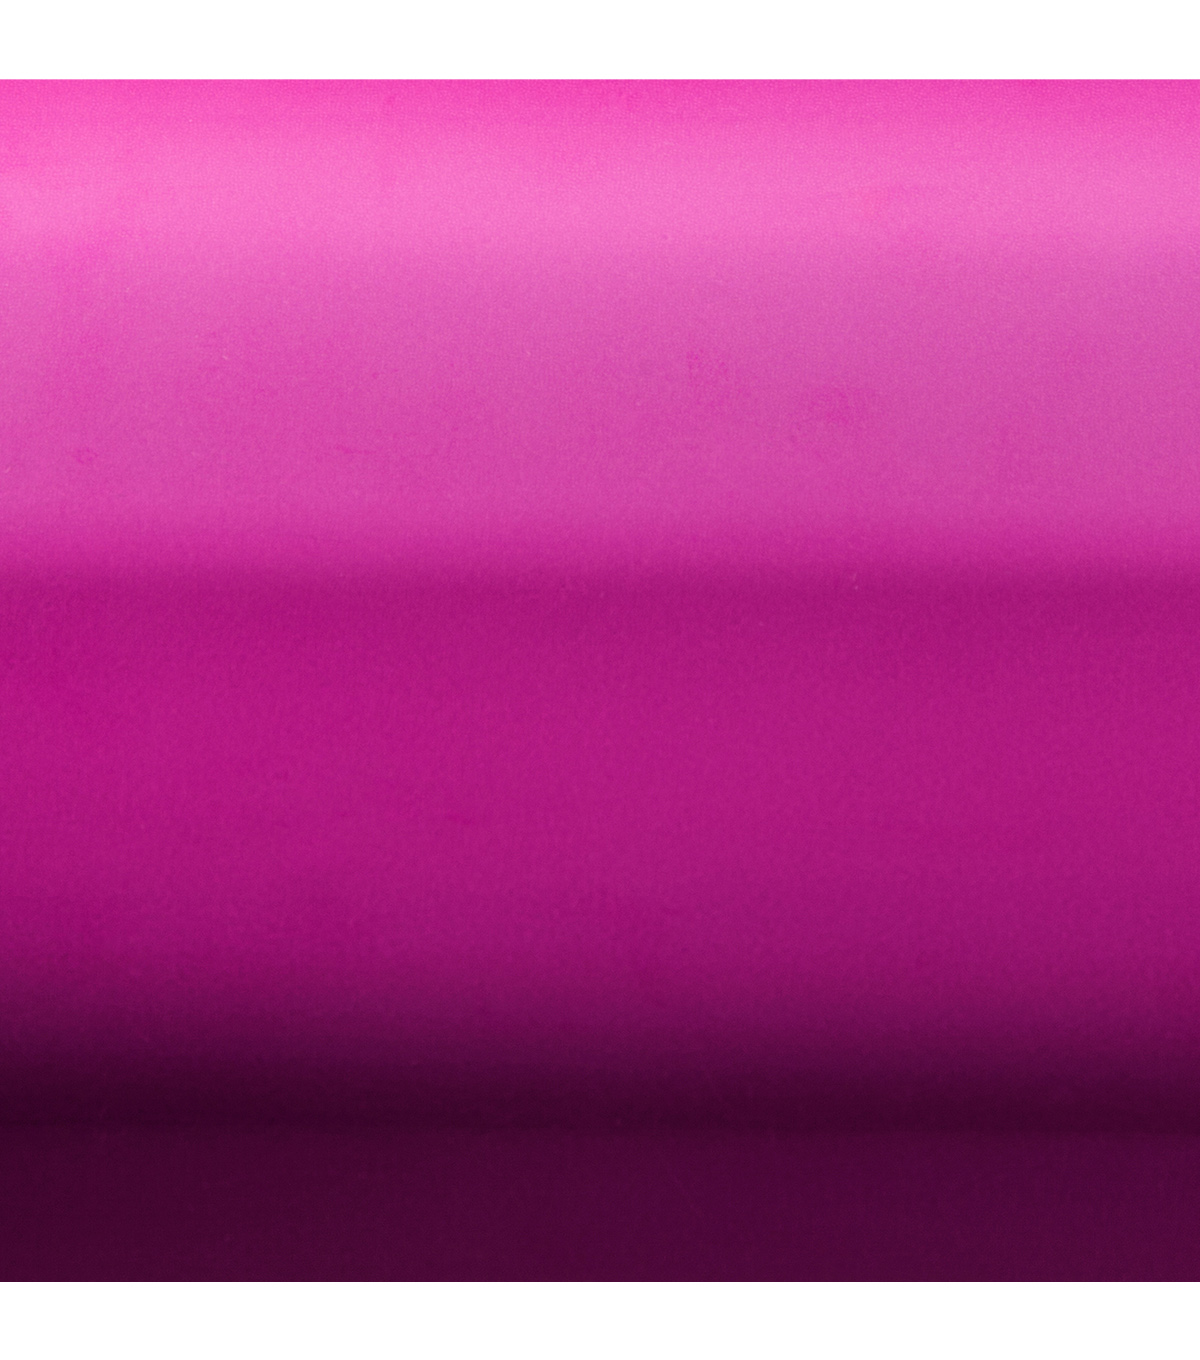 Cricut 12\u0022x24\u0022 Foil Iron-On, Magenta